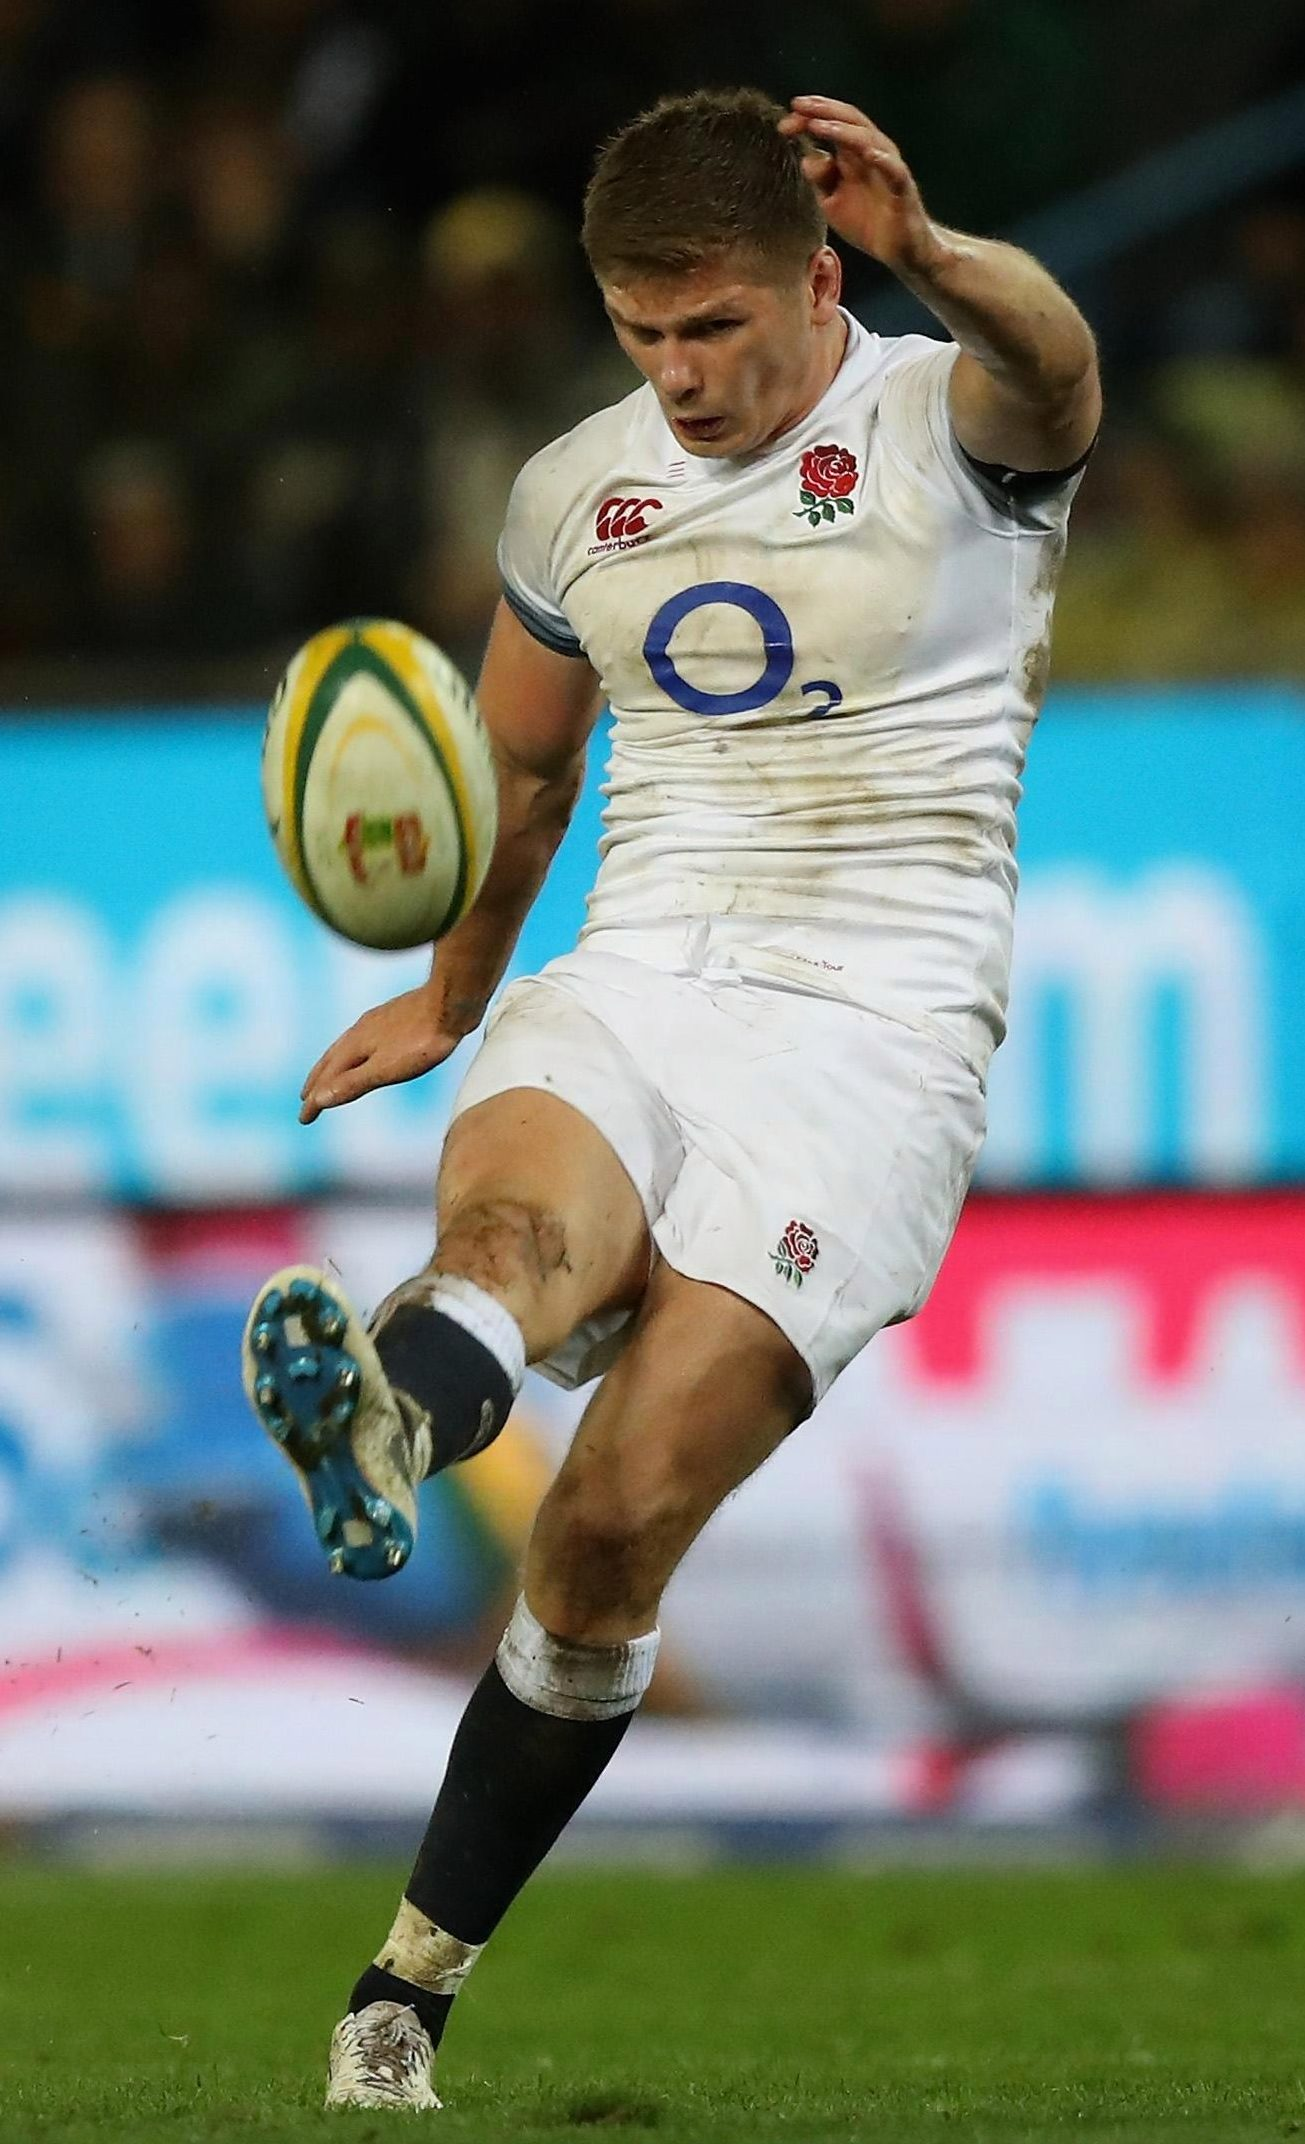 Owen Farrell kicked 20 points for England as they finally overcame South Africa - ending their six match losing streak